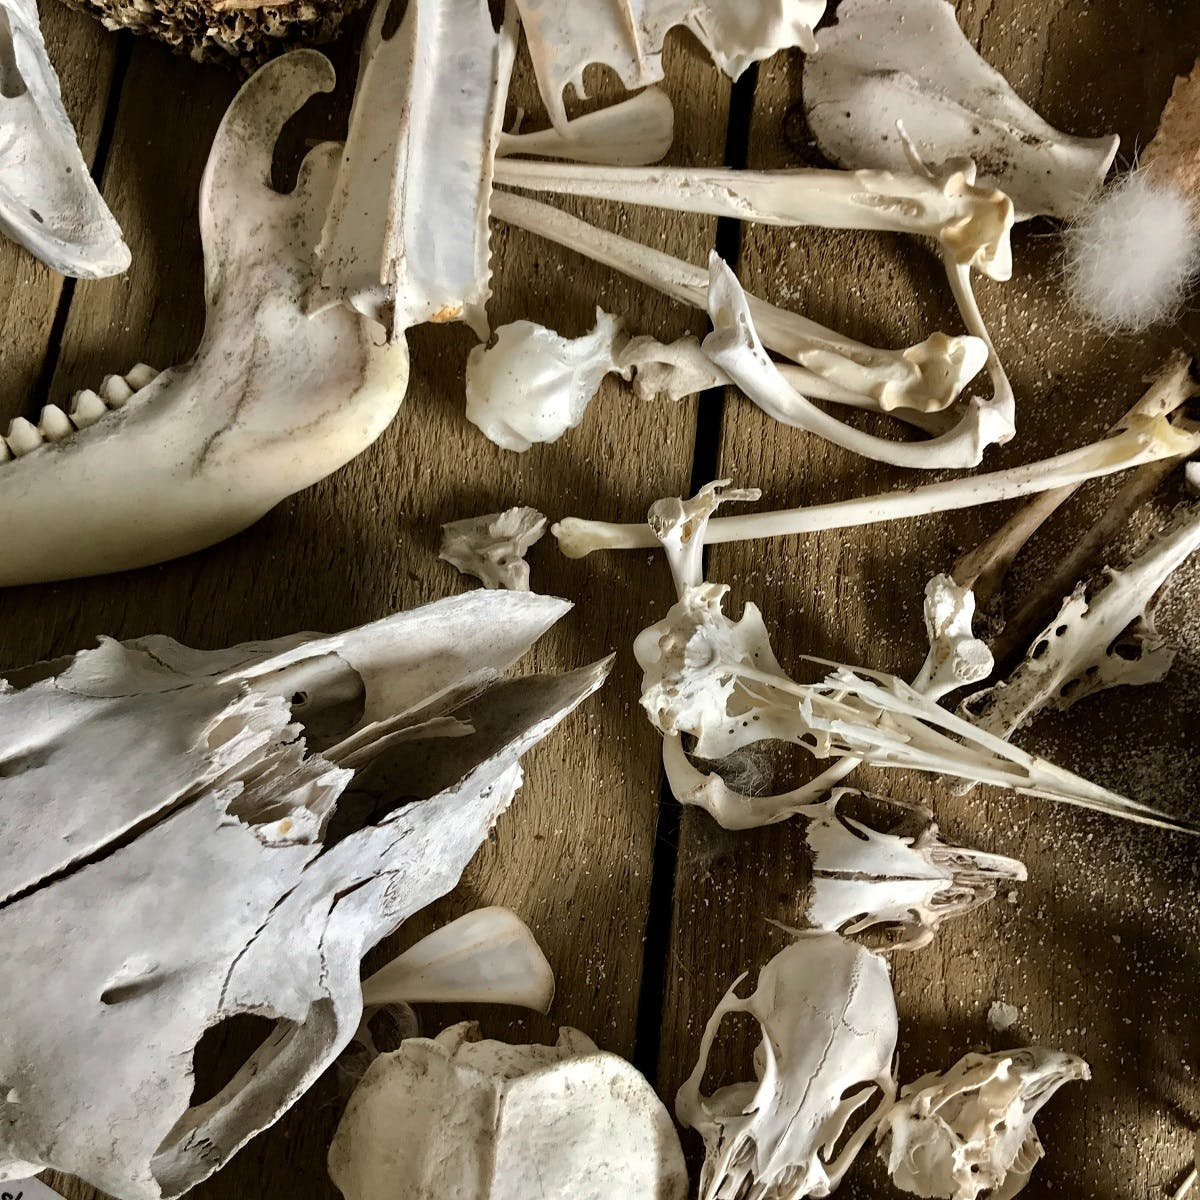 A collection of wildlife bones and skulls depicting the sixth mass extinction.